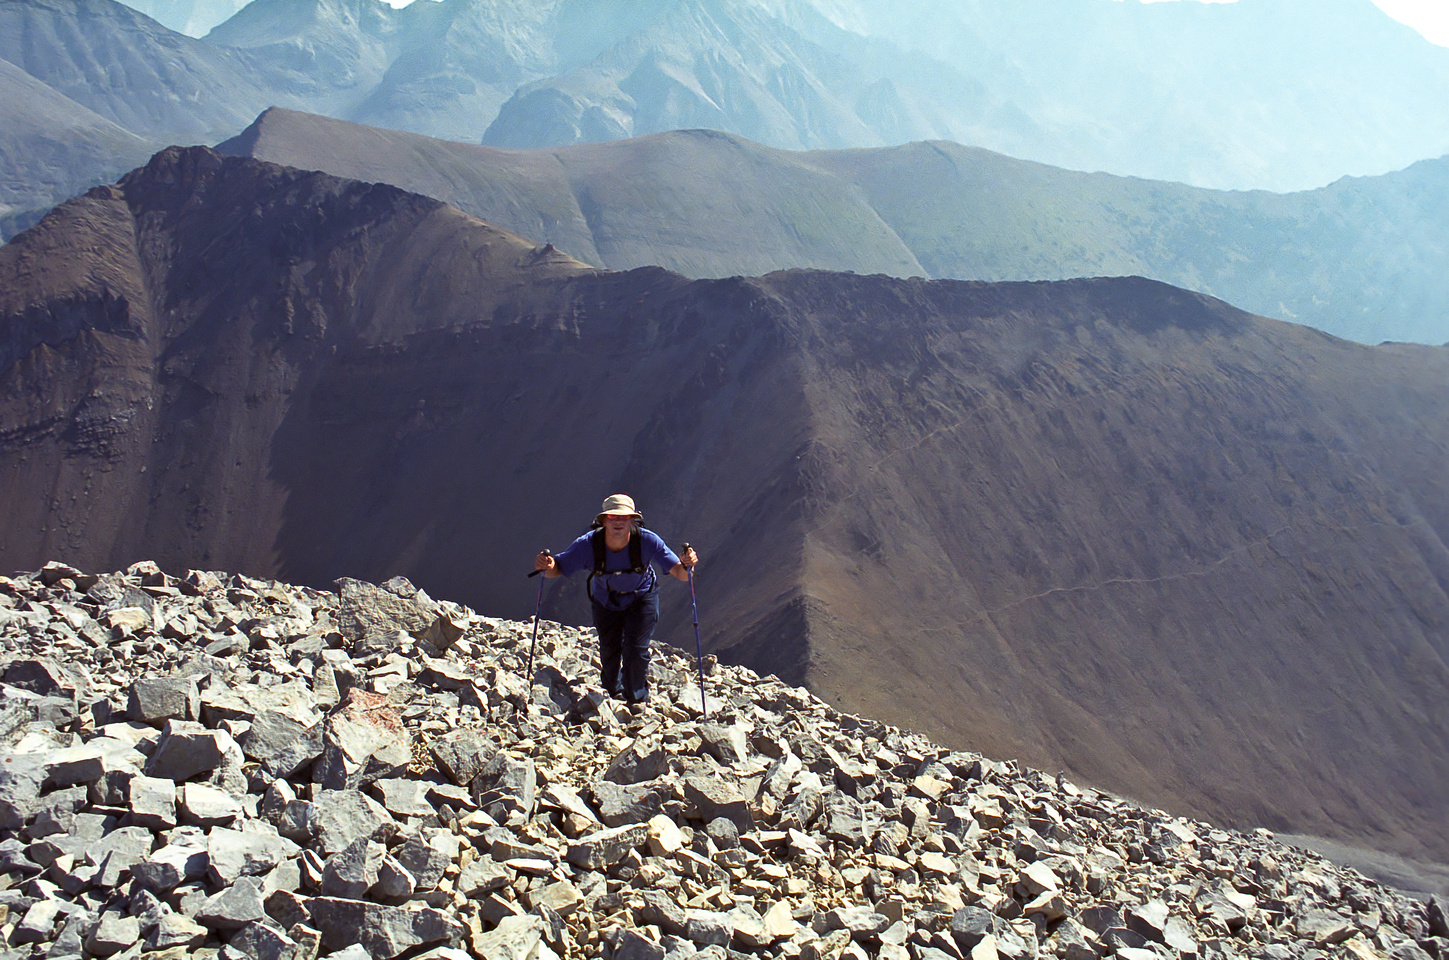 Kev comes up to the summit on classic Rockies scree with Grizzly and Highwood Ridge in the background.